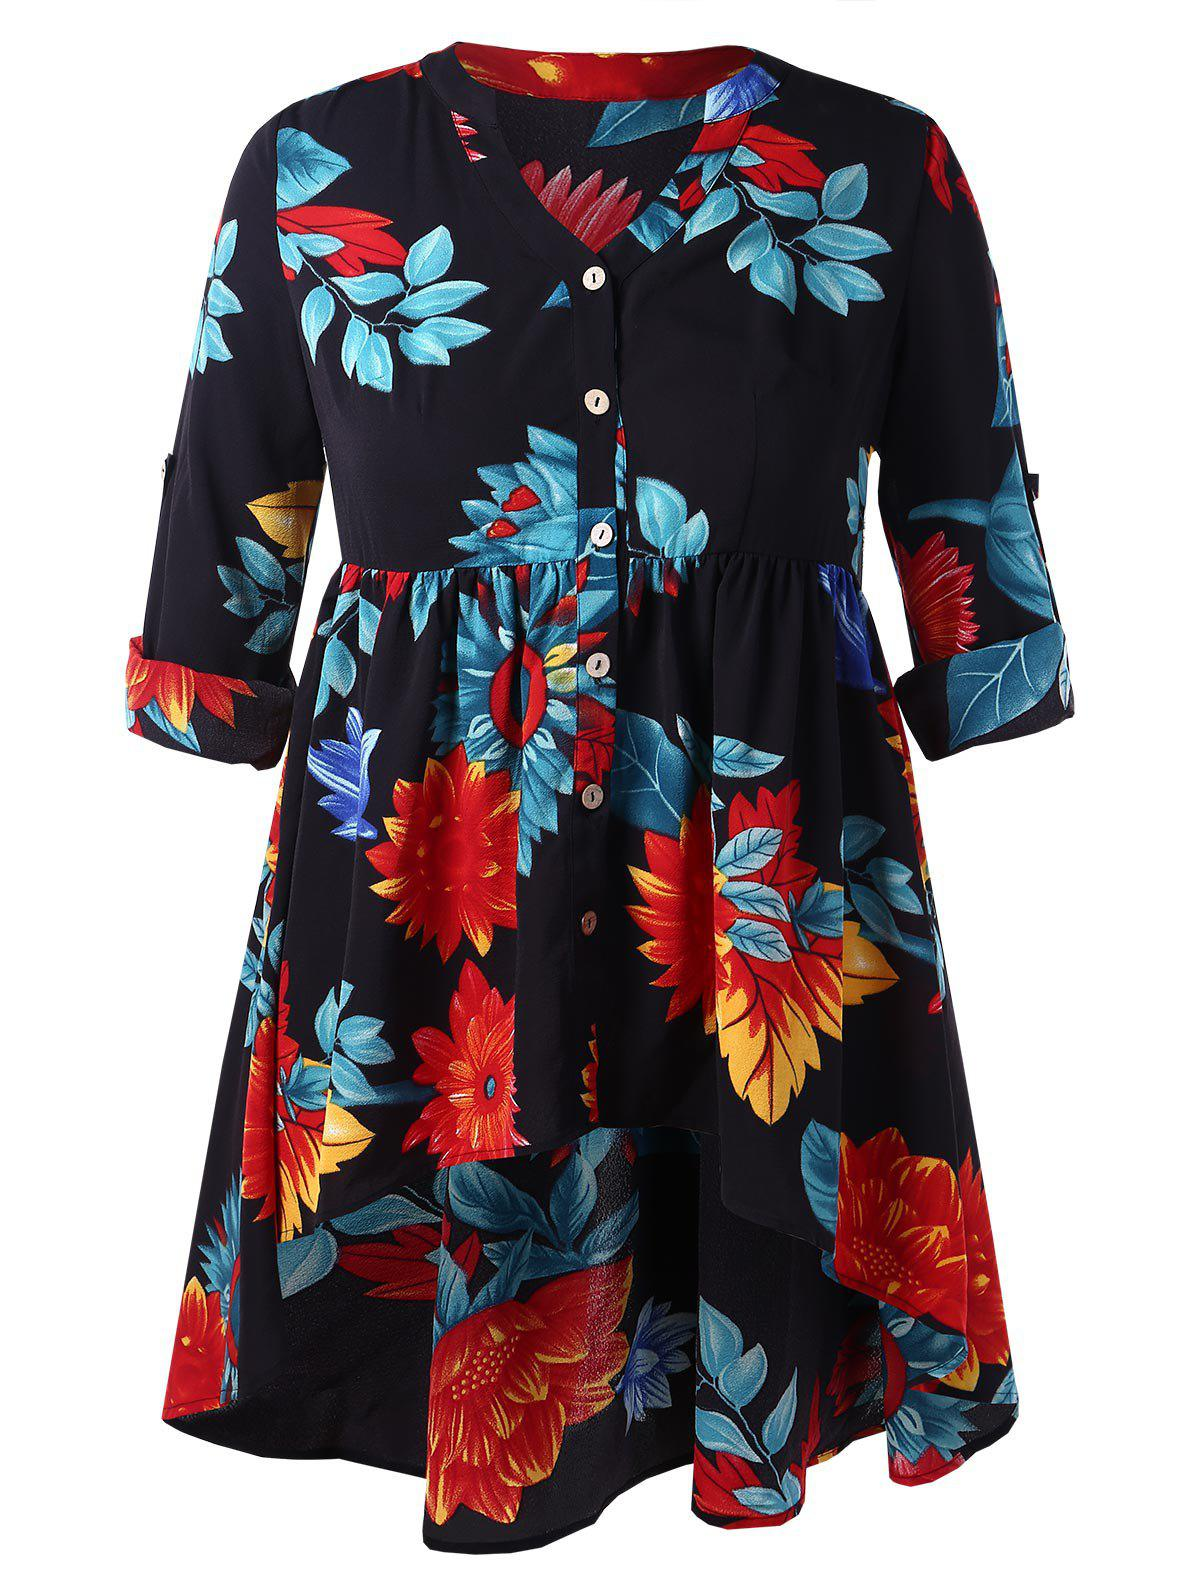 Hot Plus Size Floral High Low Peplum Blouse